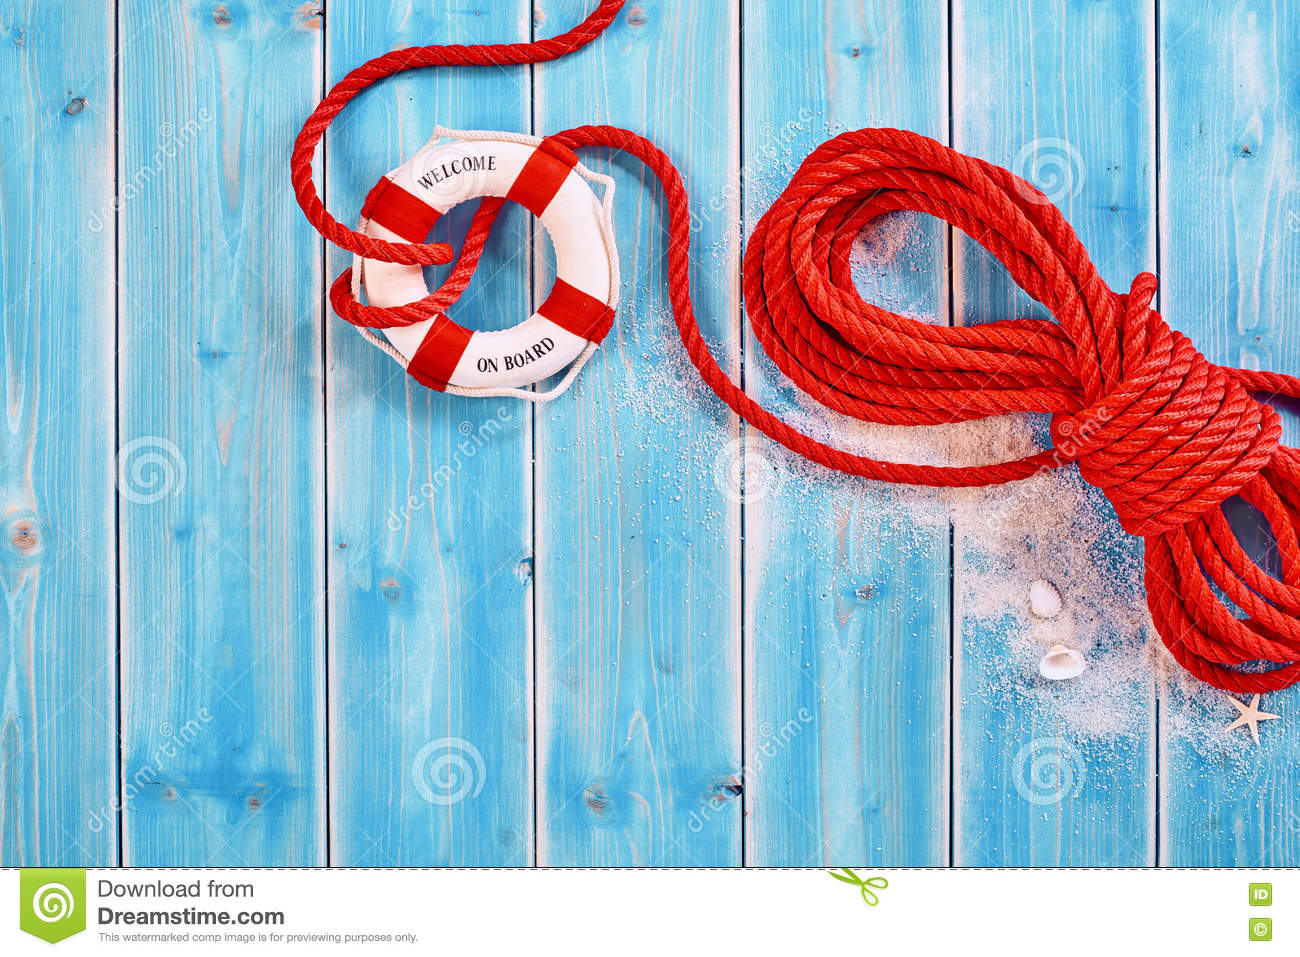 Rescue rope with life preserver over blue